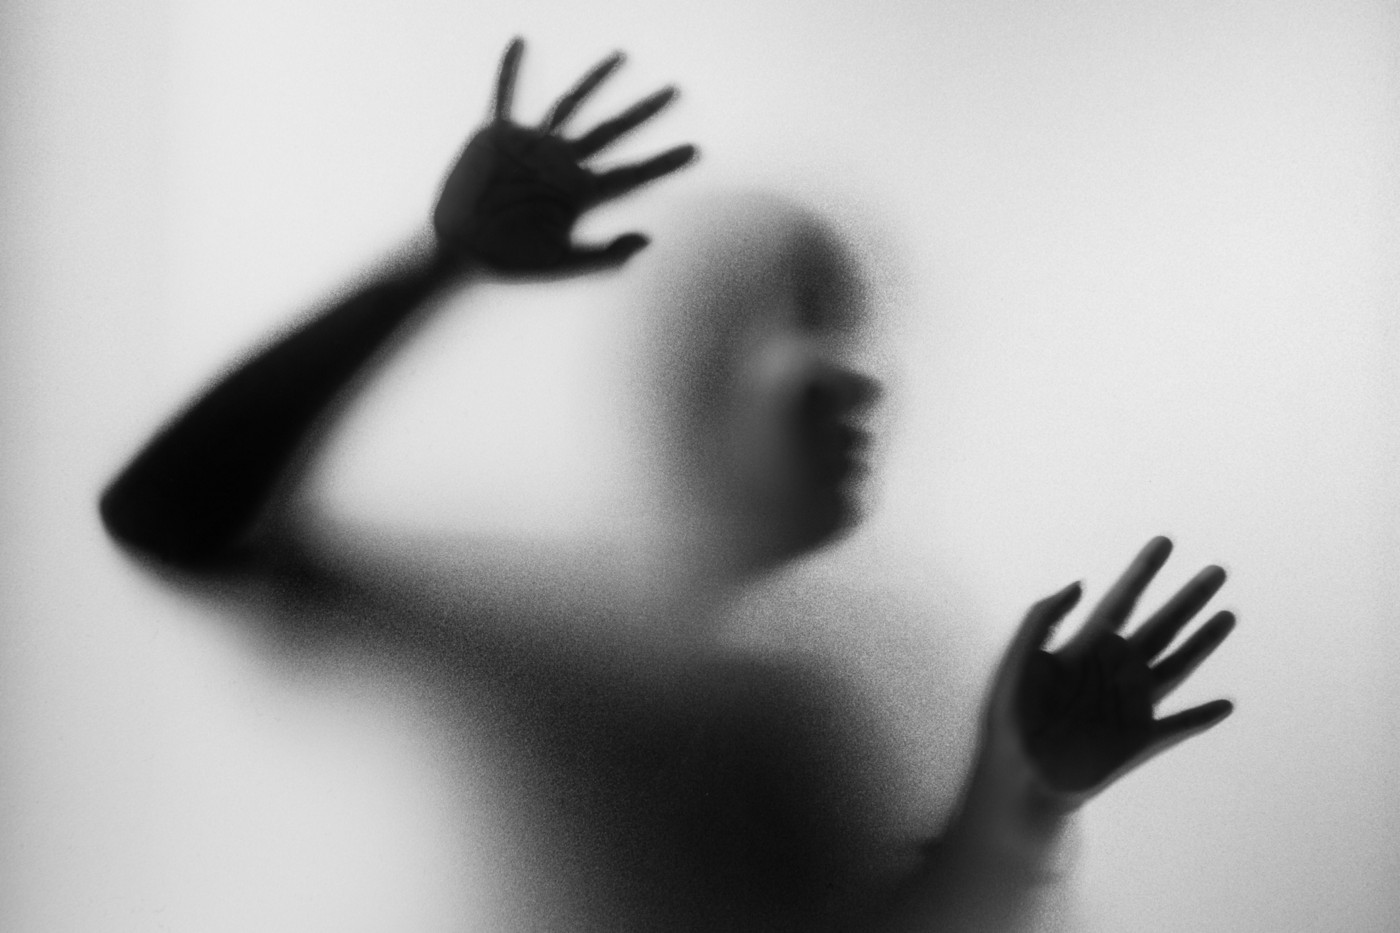 An eerie image of the silhouette of a person seen through frosted glass.